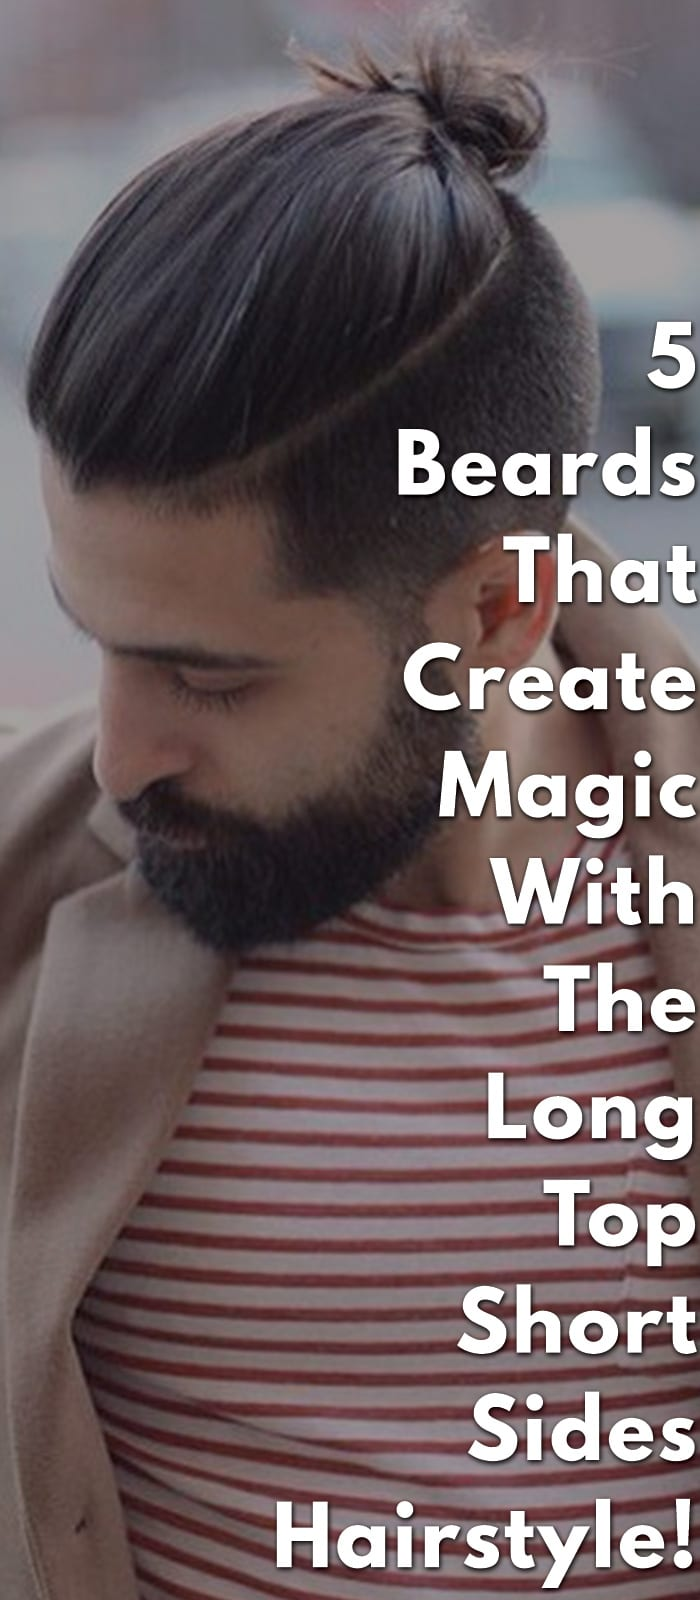 5-Beards-That-Create-Magic-With-The-Long-Top-Short-Sides-Hairstyle!